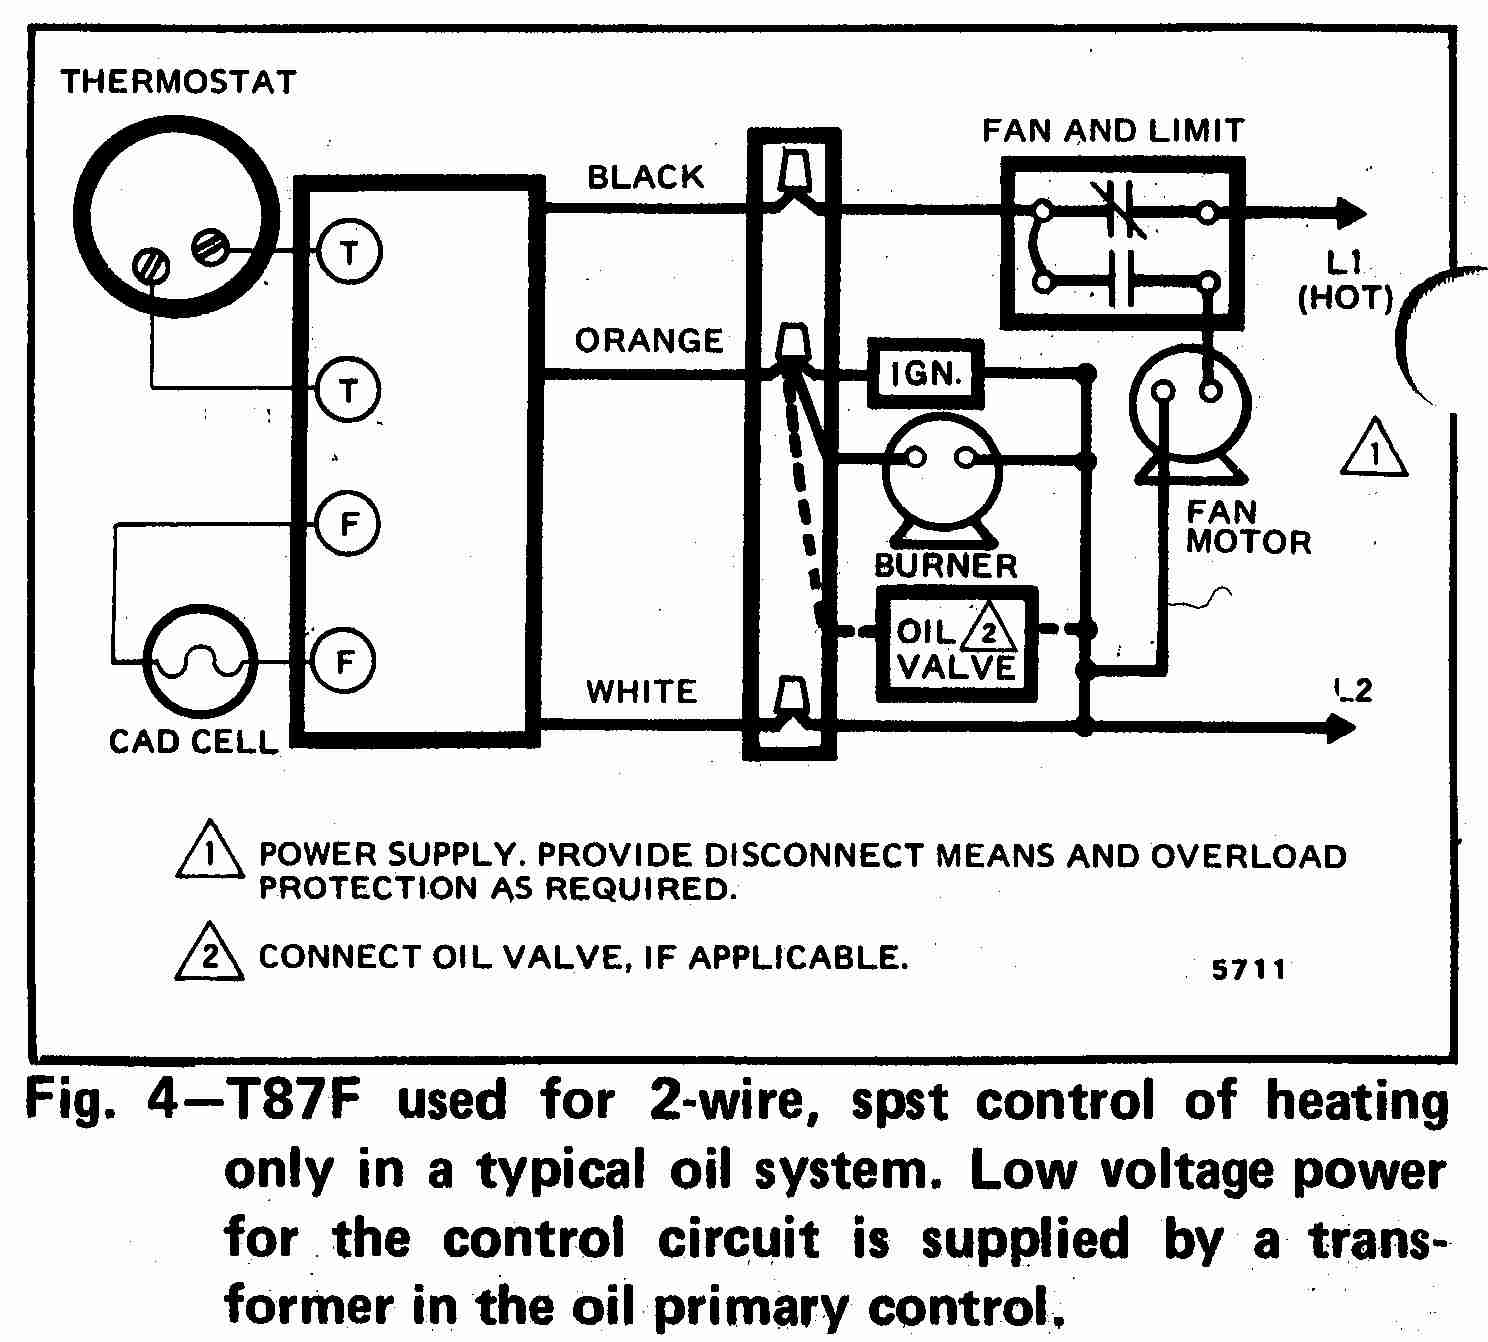 TT_T87F_0002_2W_DJF honeywell wiring diagram honeywell rth221b wiring diagram \u2022 wiring honeywell v4043 wiring diagram at edmiracle.co